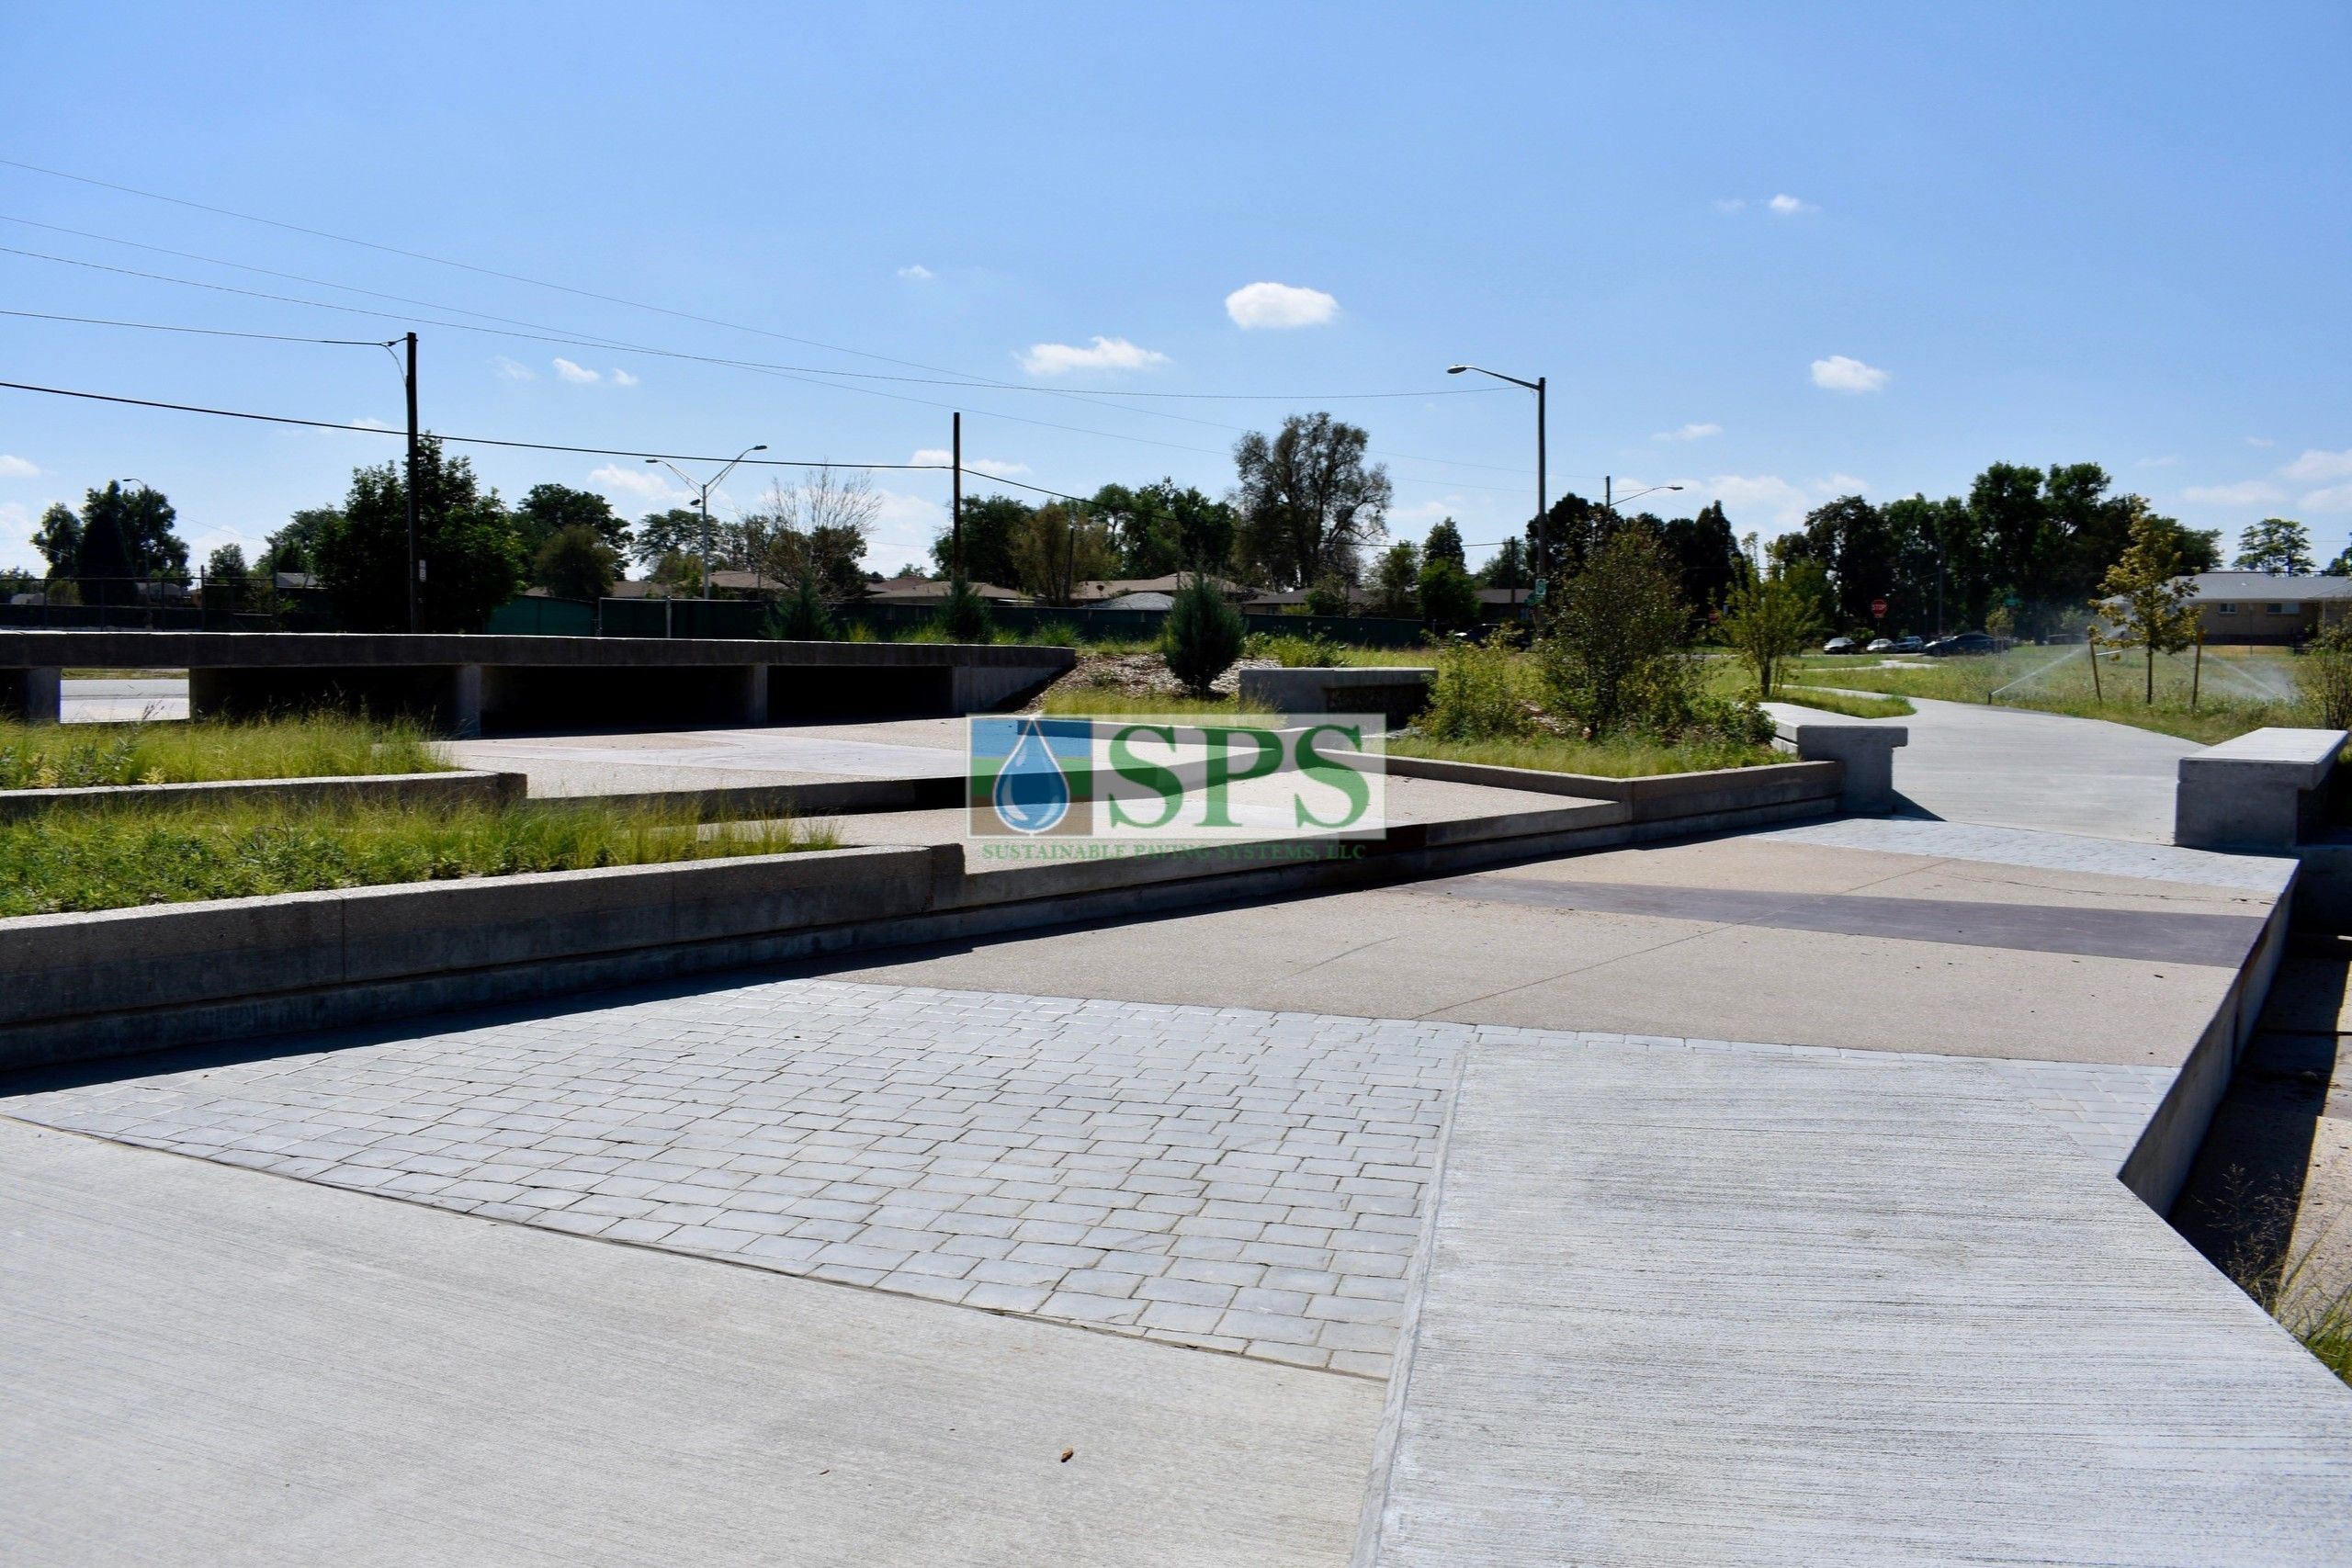 Gabion tiered drop structure detention pond located in Denver, CO that was planted with varying grasses for greenspace and stormwater management using Sustainable Paving Systems Partial Grasscrete System installation of a pervious monolithic cast-in-place concrete.